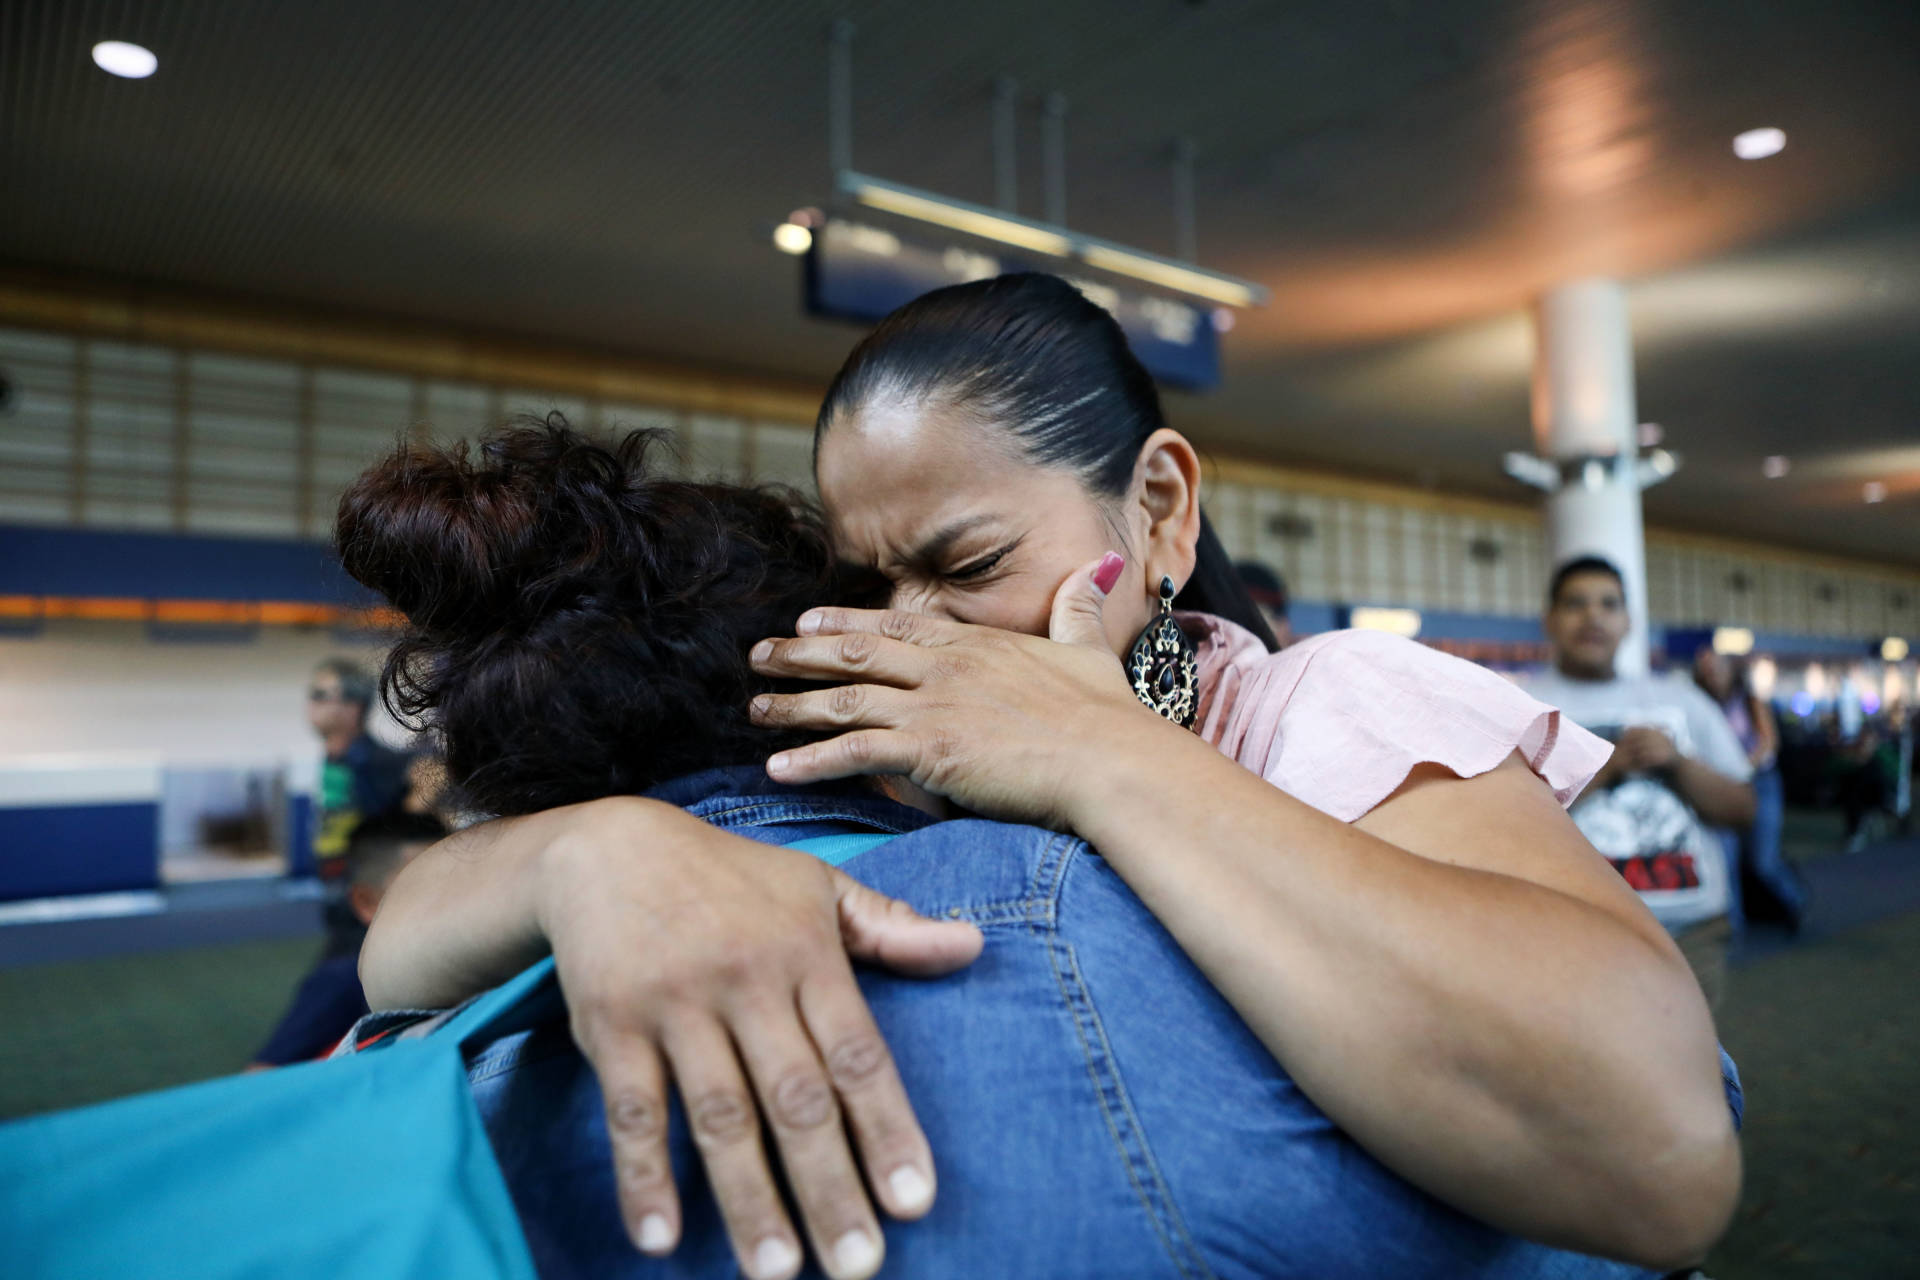 An immigrant who identified herself only as Vioney (L), was released after spending six months in an ICE detention facility. She hugged her sister Yadira while being reunited with family on Sept. 2, 2018, in Oregon. Vioney, originally from Mexico, crossed the San Ysidro Port of Entry with three of her children in February, and asked for asylum. She was separated from her three children the same day and held in detention in California until August 31. Her children, who are U.S. citizens, were immediately freed. A group of mothers known as Immigrant Families Together posted her bond, and she will remain in the country with her family while her case is adjudicated.  Mario Tama/Getty Images